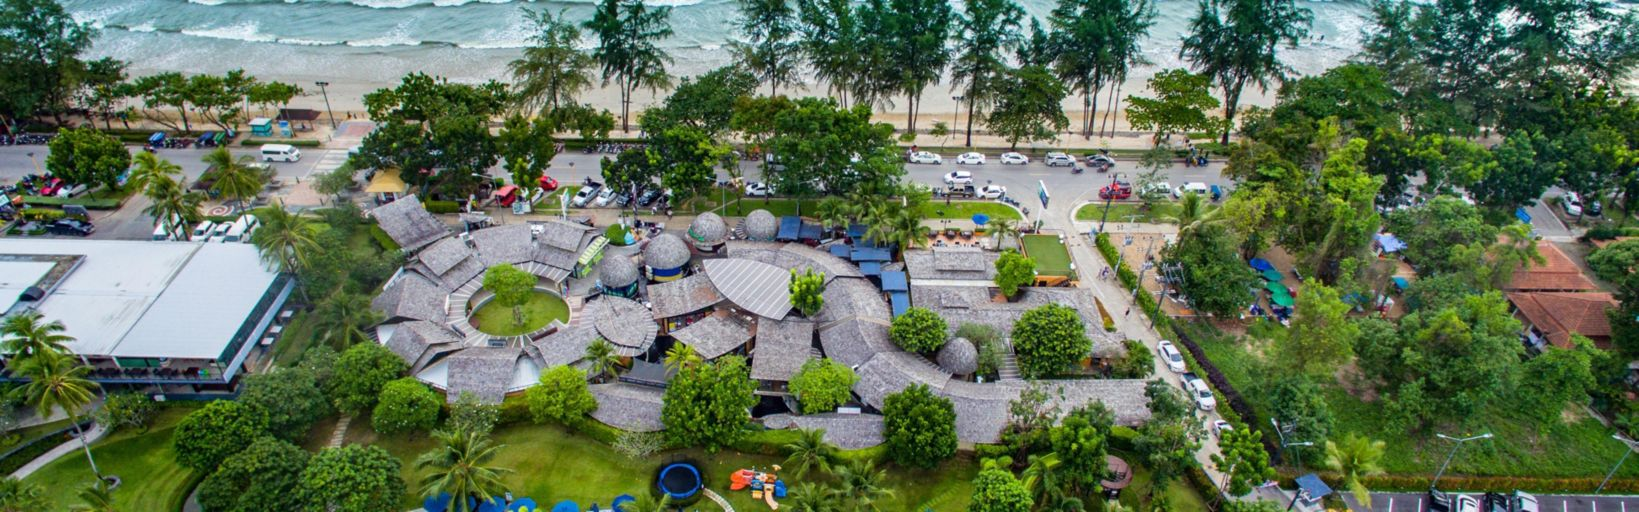 Holiday Inn Resort Krabi Ao Nang Beach Wing Building Aerial View